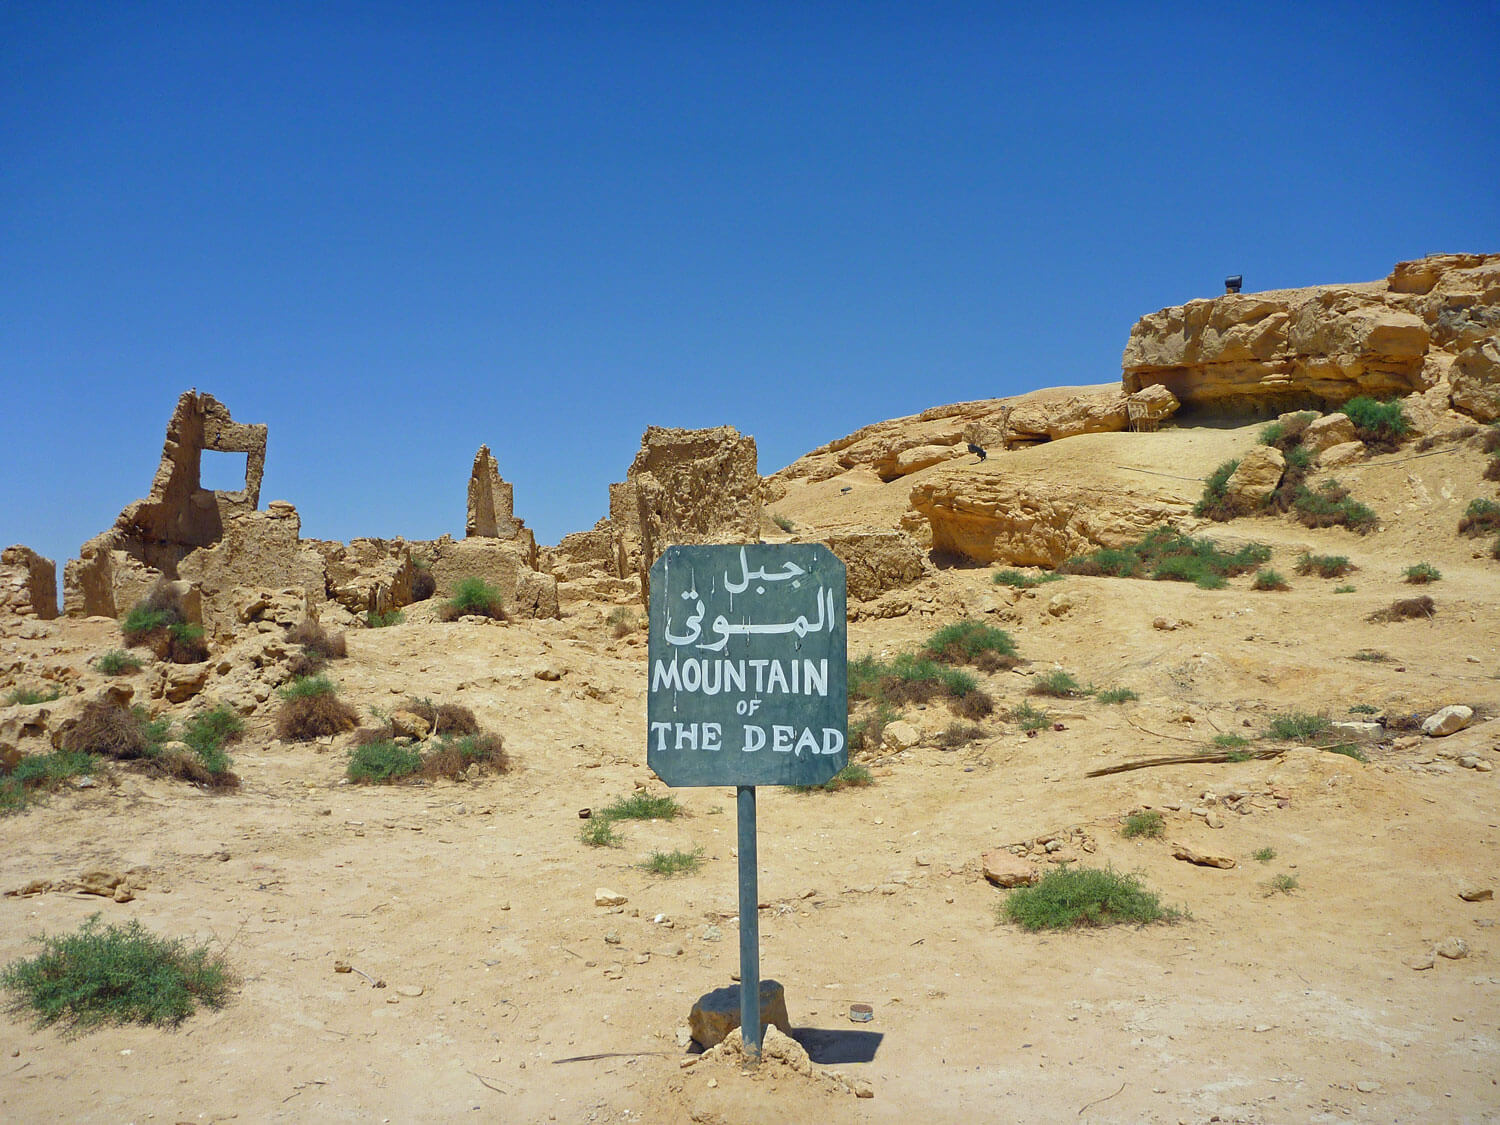 egypt-siwa-oasis-mountain-dead-tomb-crypt-ancient.jpg